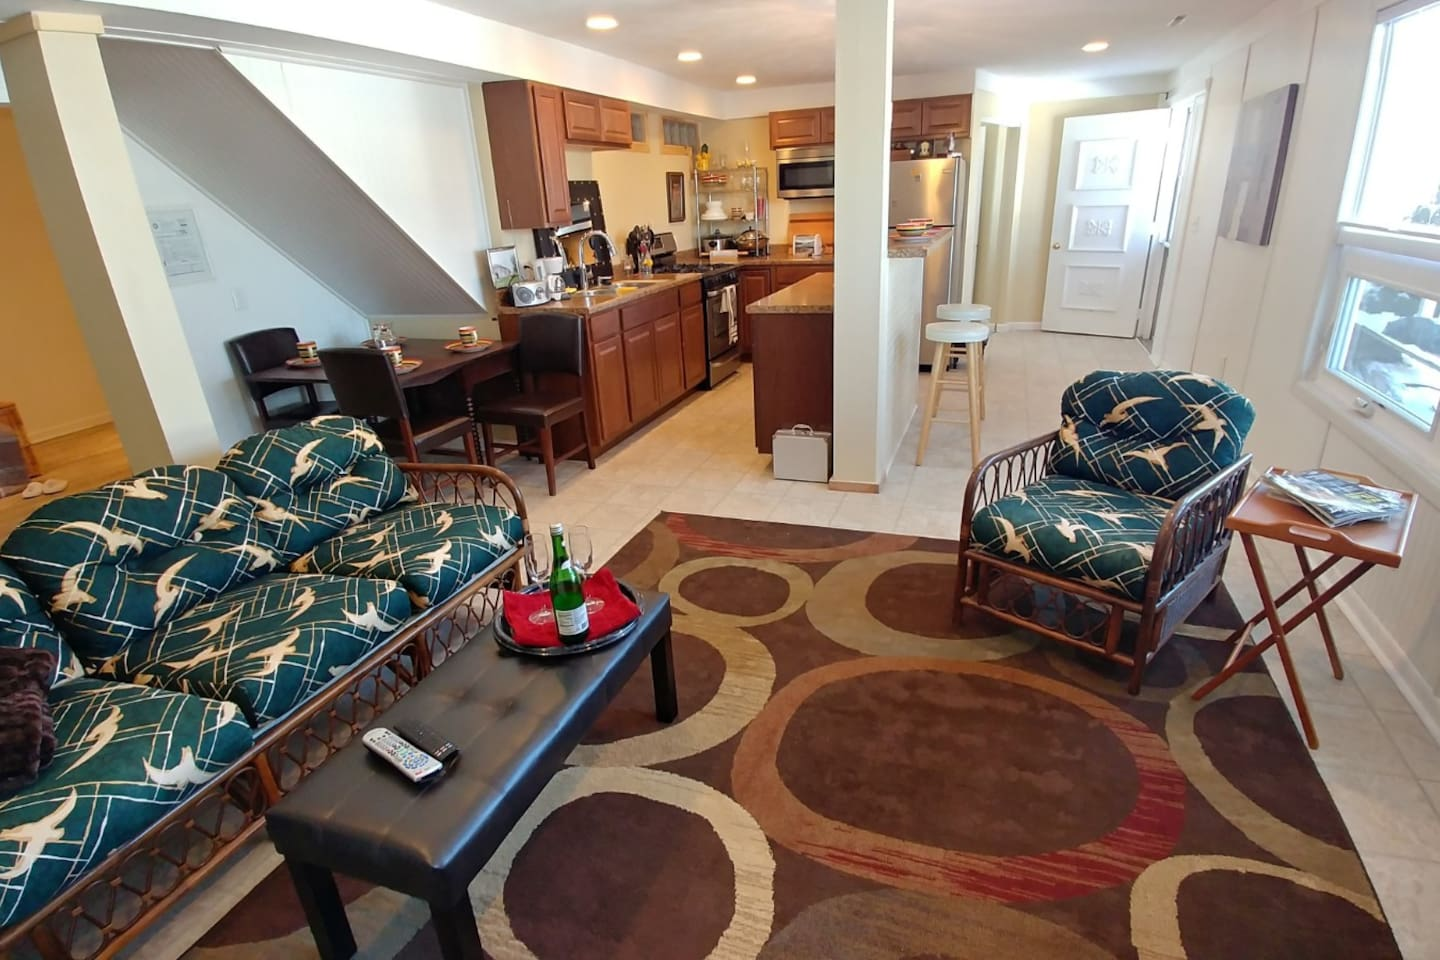 Studio means open floor plan small apartment, but bigger than a typical hotel room.